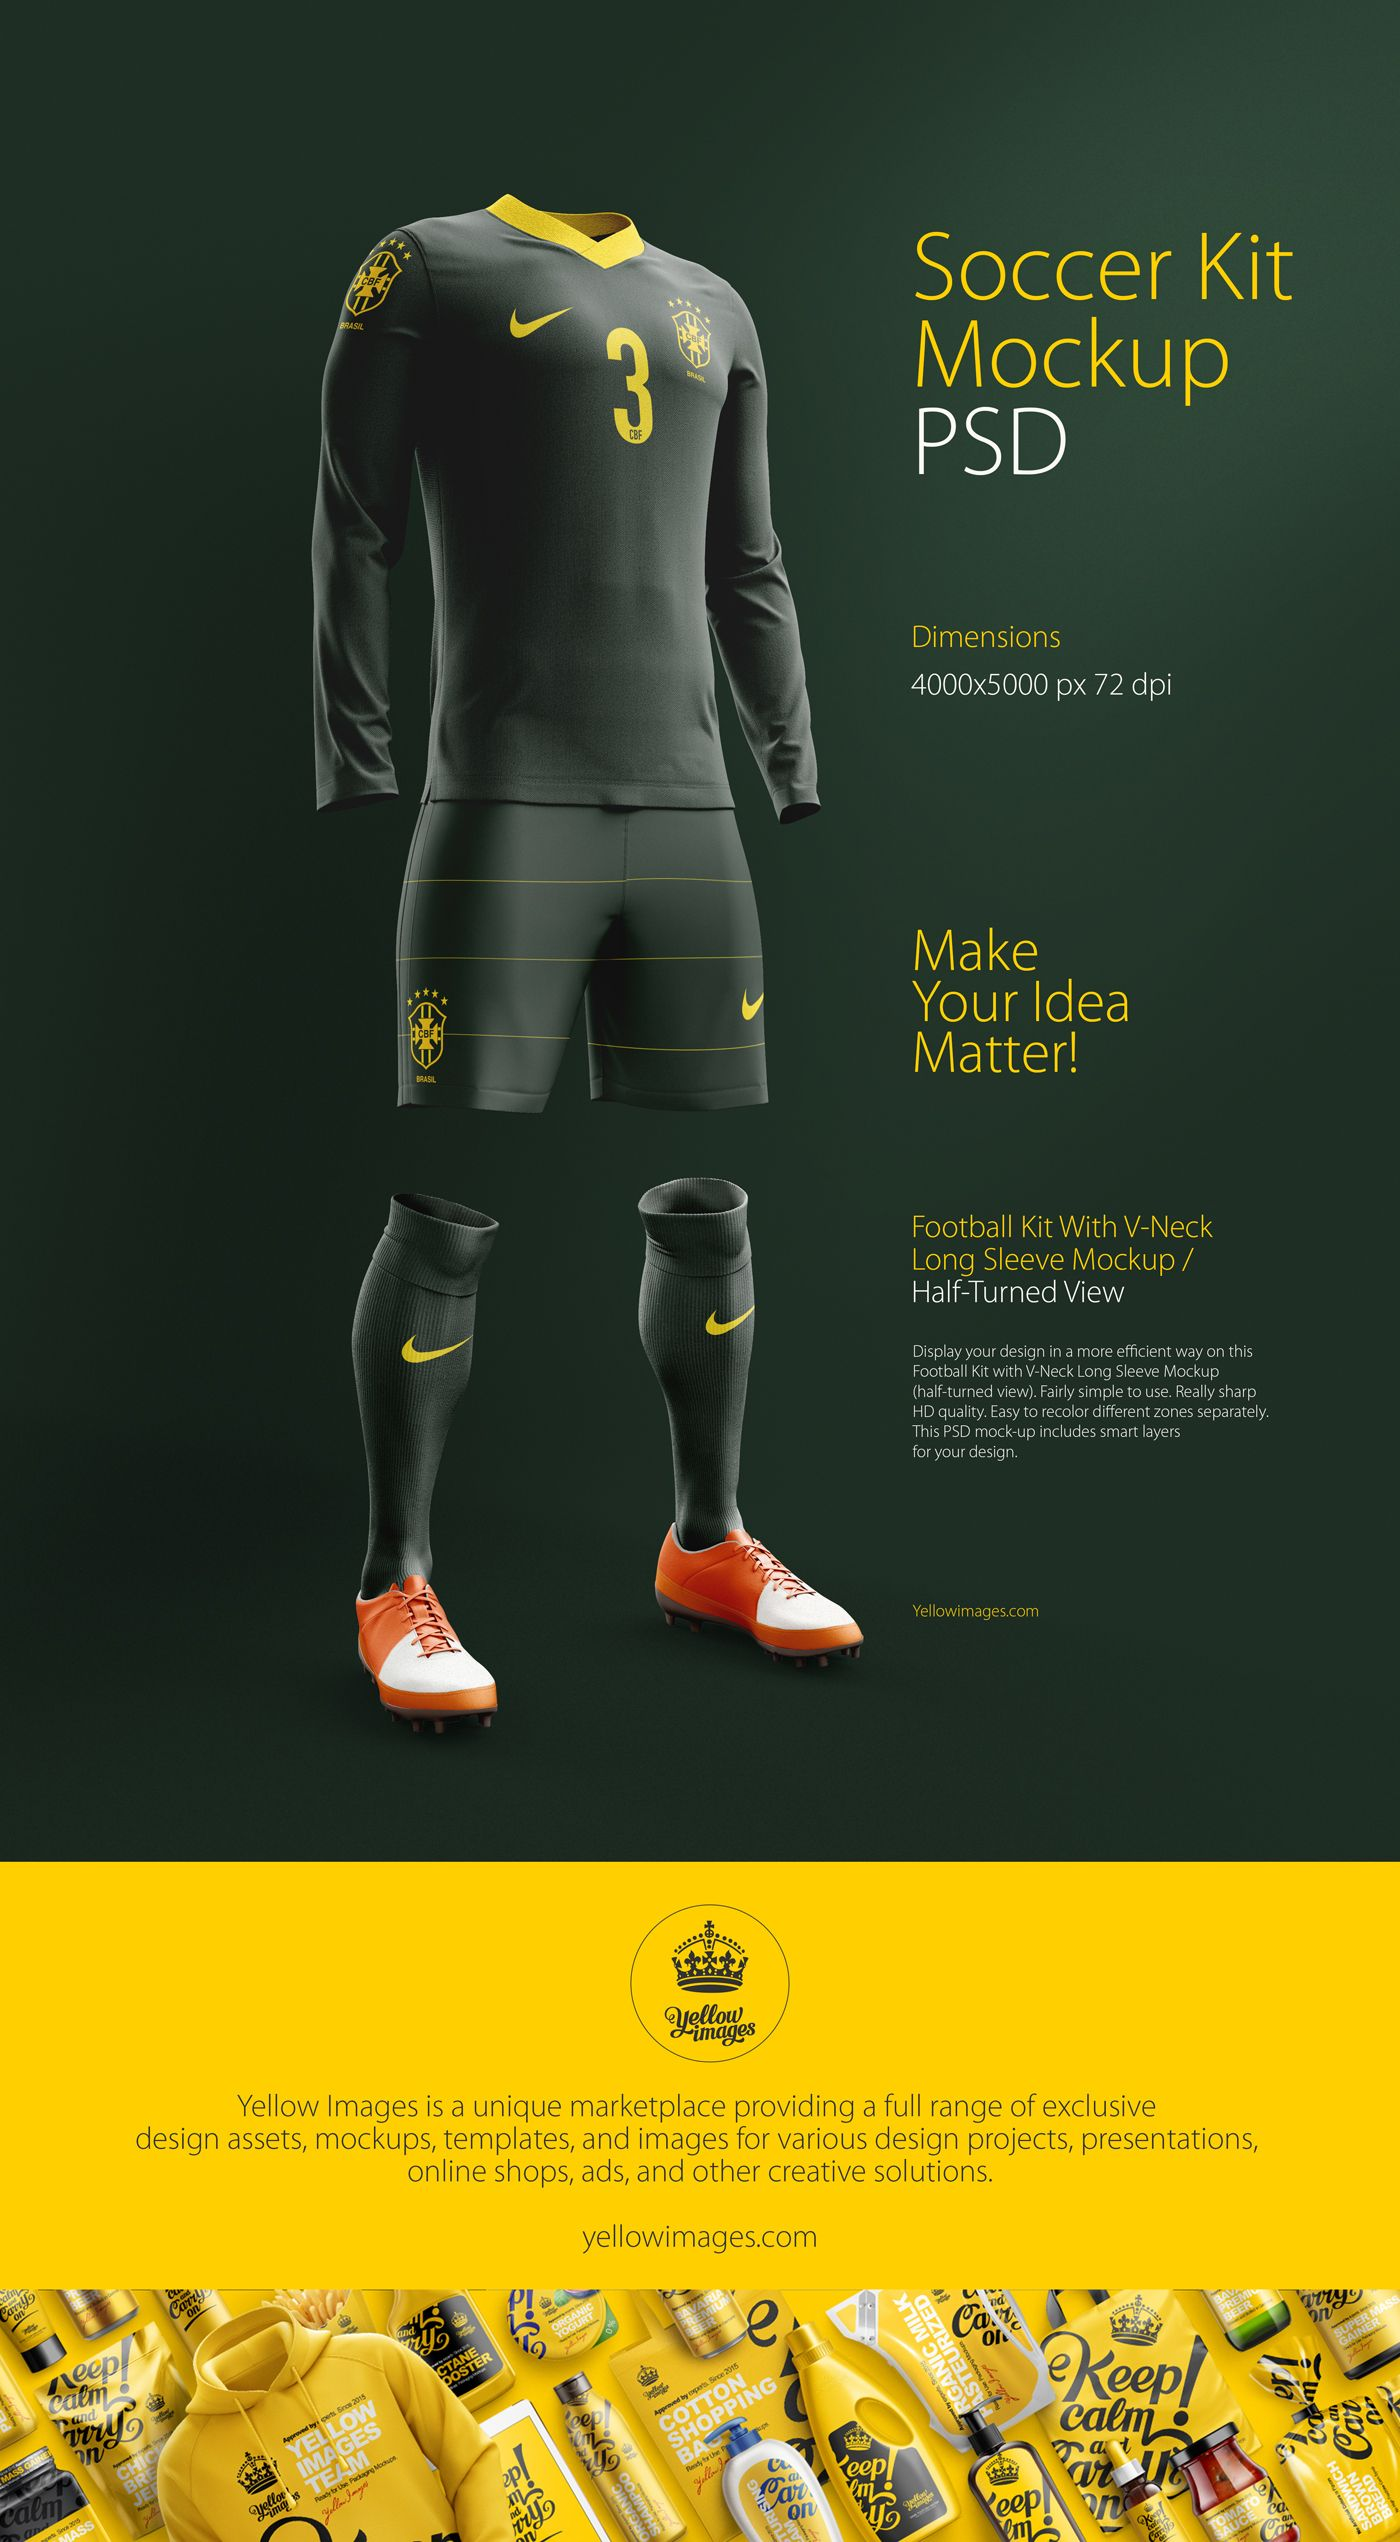 About Yellow Imagesyellow Images Is A Unique Marketplace Providing A Full Range Of Exclusive Design Assets Mockups Templates Soccer Kits Football Kits Mockup